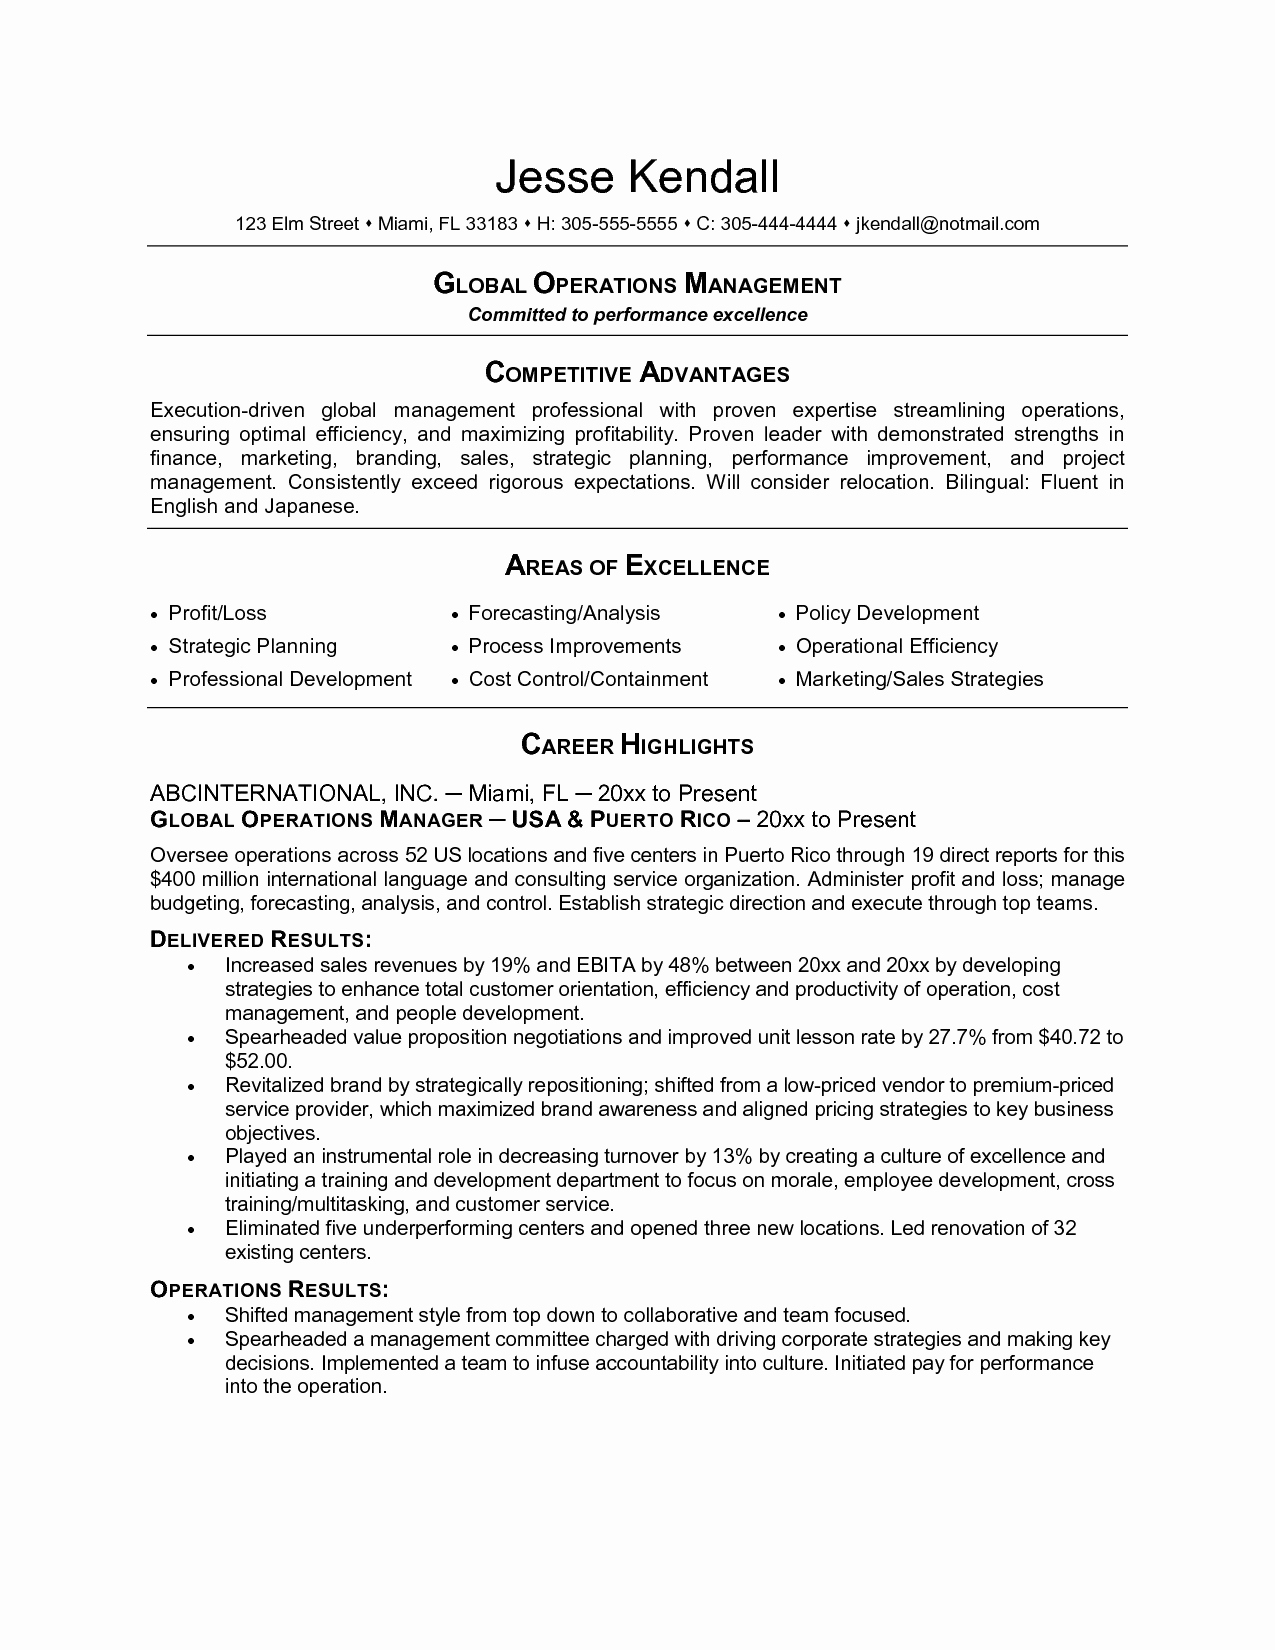 Chiropractic assistant Resume - Document Controller Resume Samples Chiropractic assistant Resume